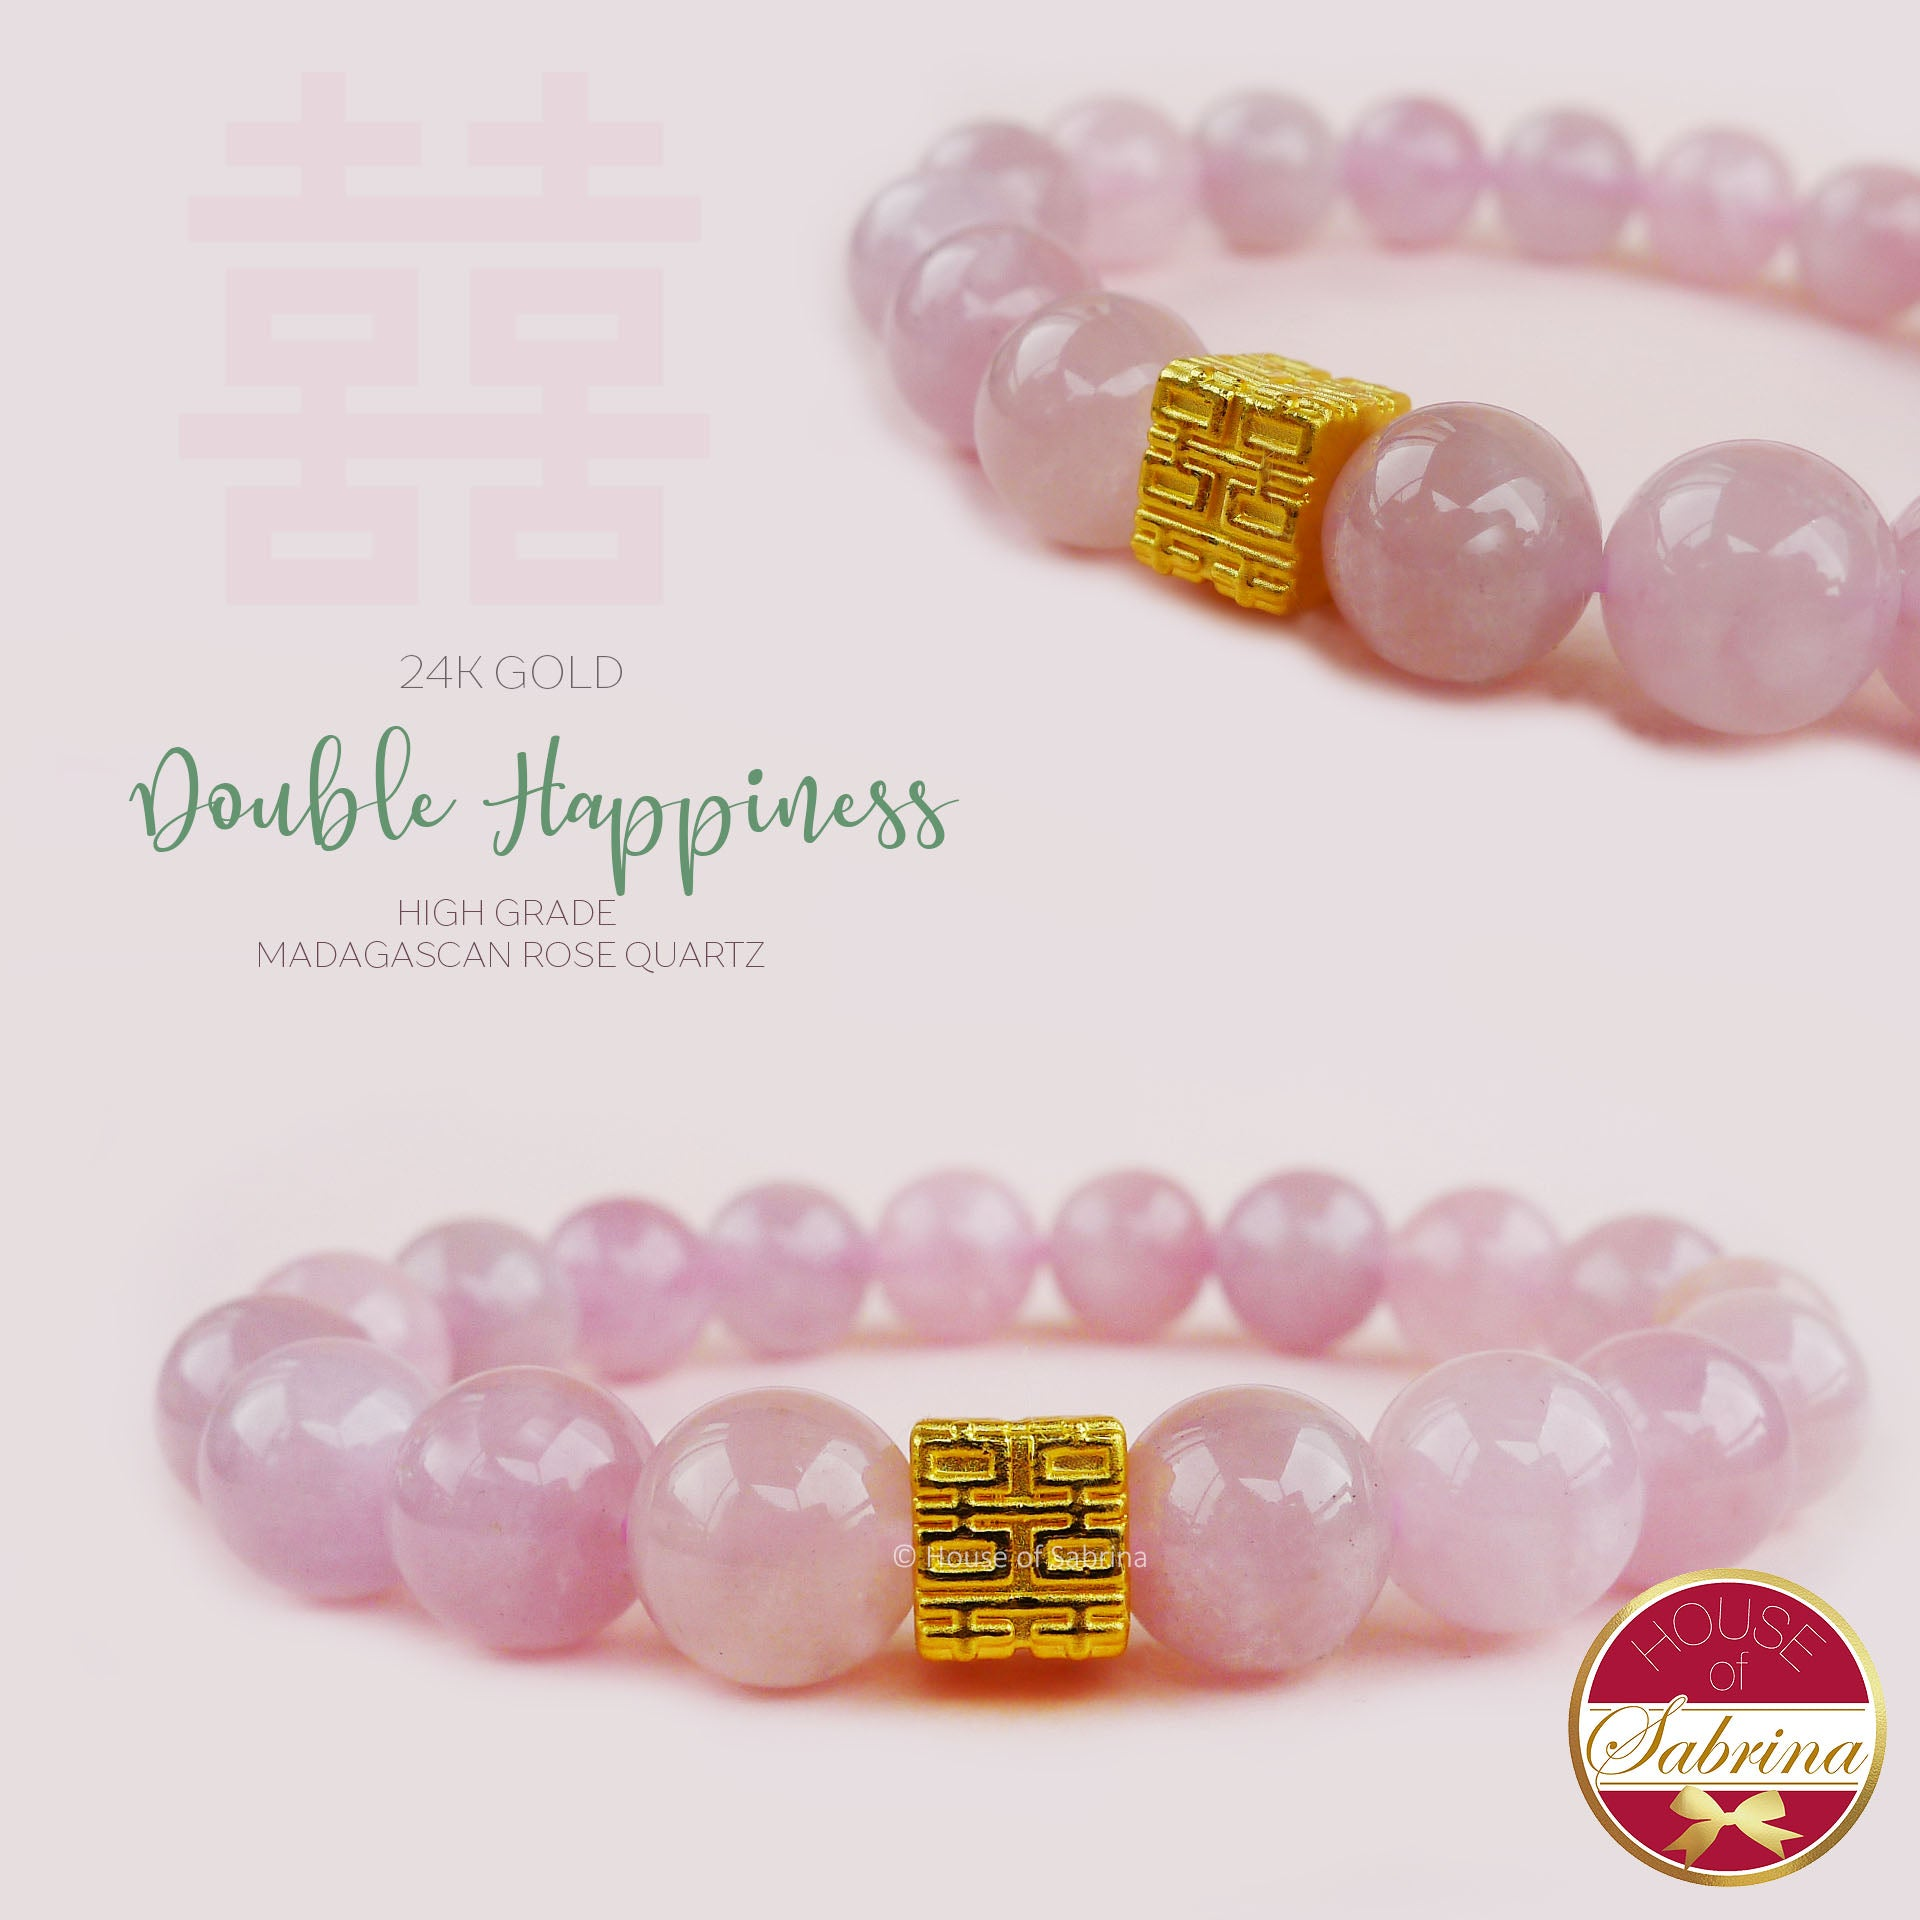 24K GOLD DOUBLE HAPPINESS on HIGH GRADE MADAGASCAN ROSE QUARTZ LUCKY CHARM BRACELET